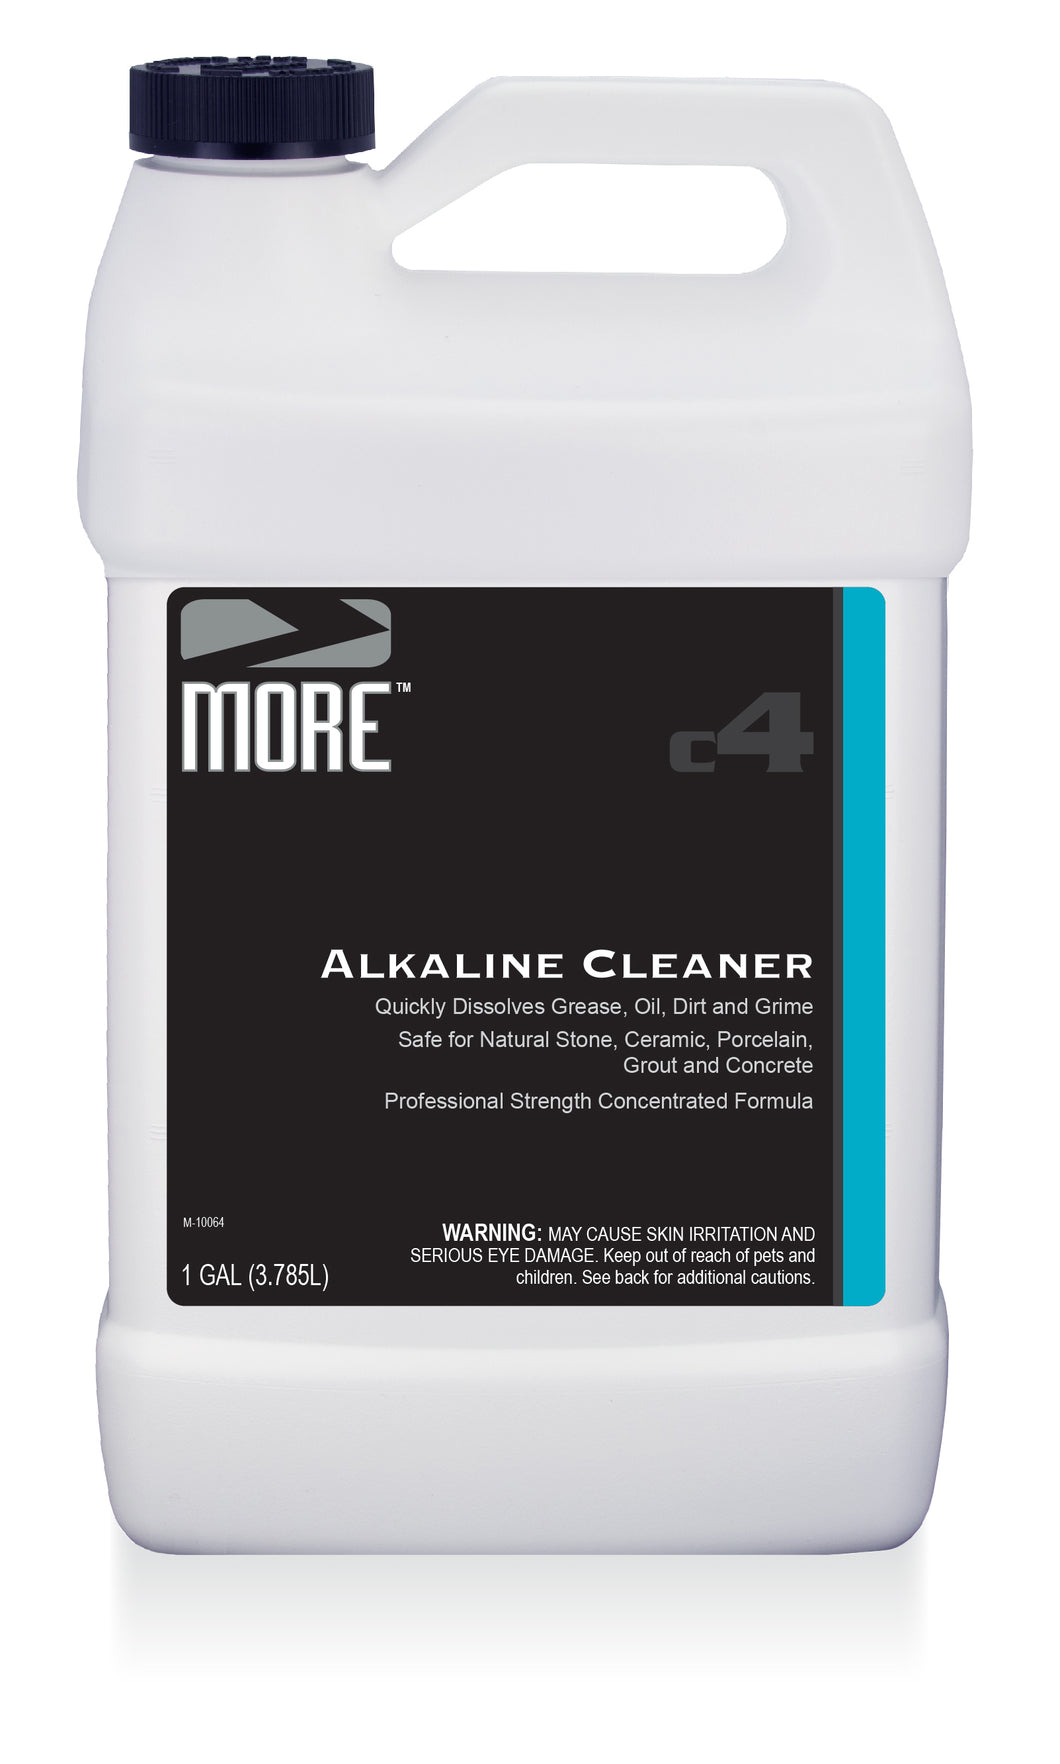 MORE™ Alkaline Cleaner